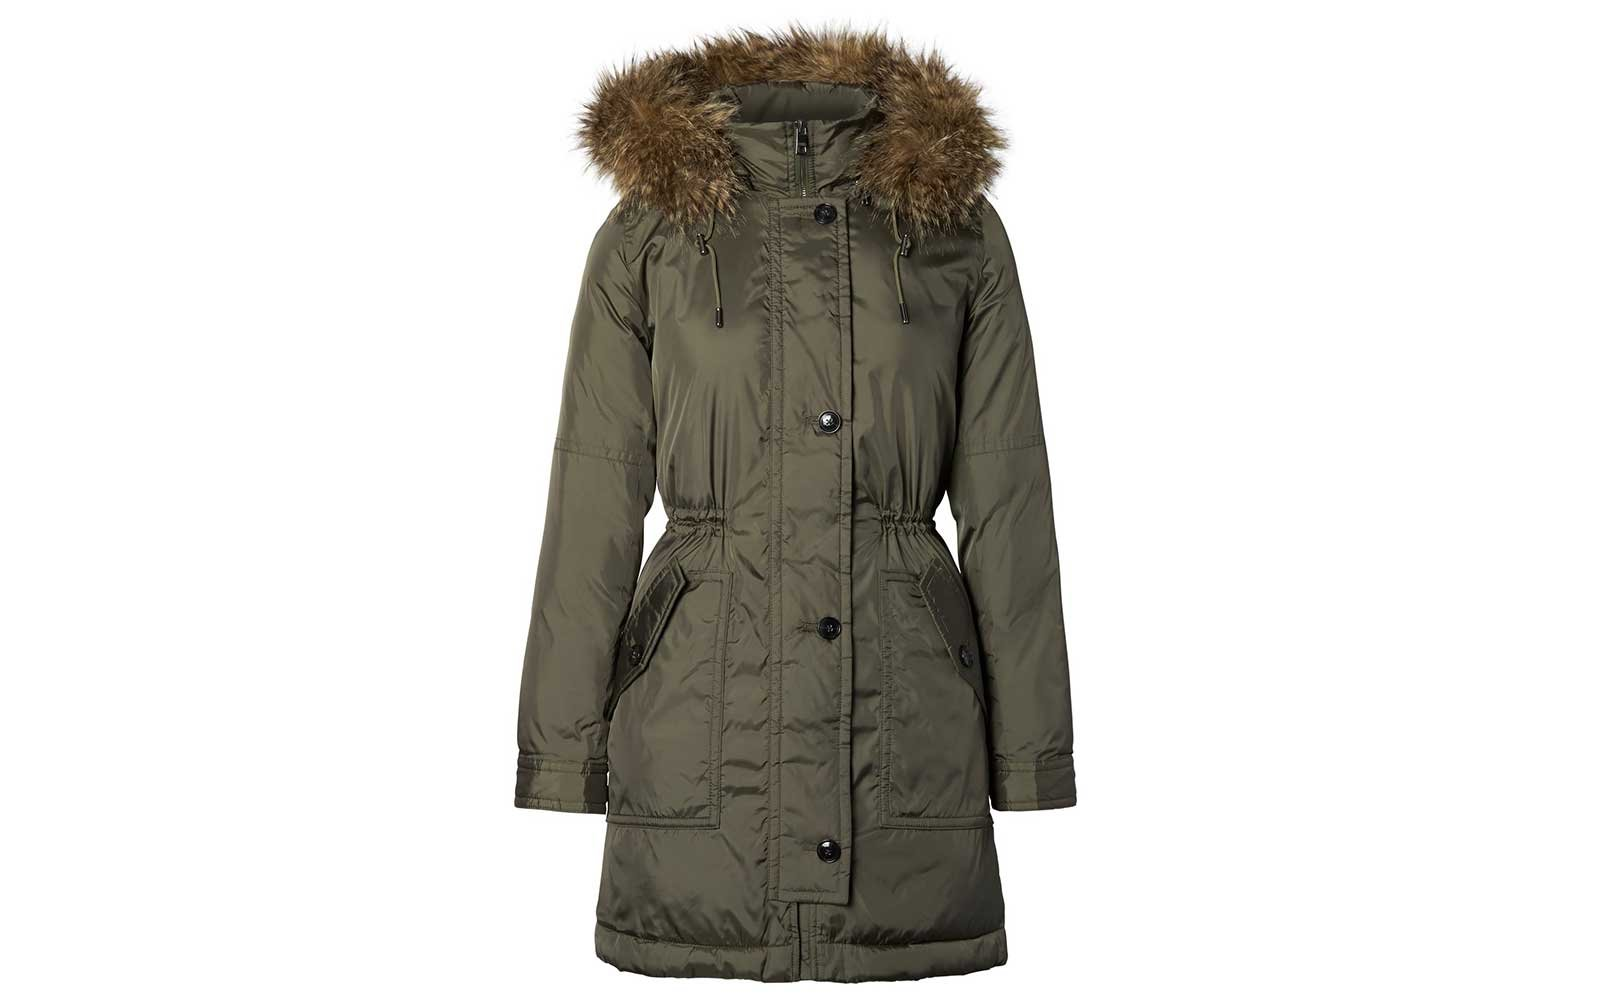 15 Best Parkas And Puffer Jackets For Kids picture